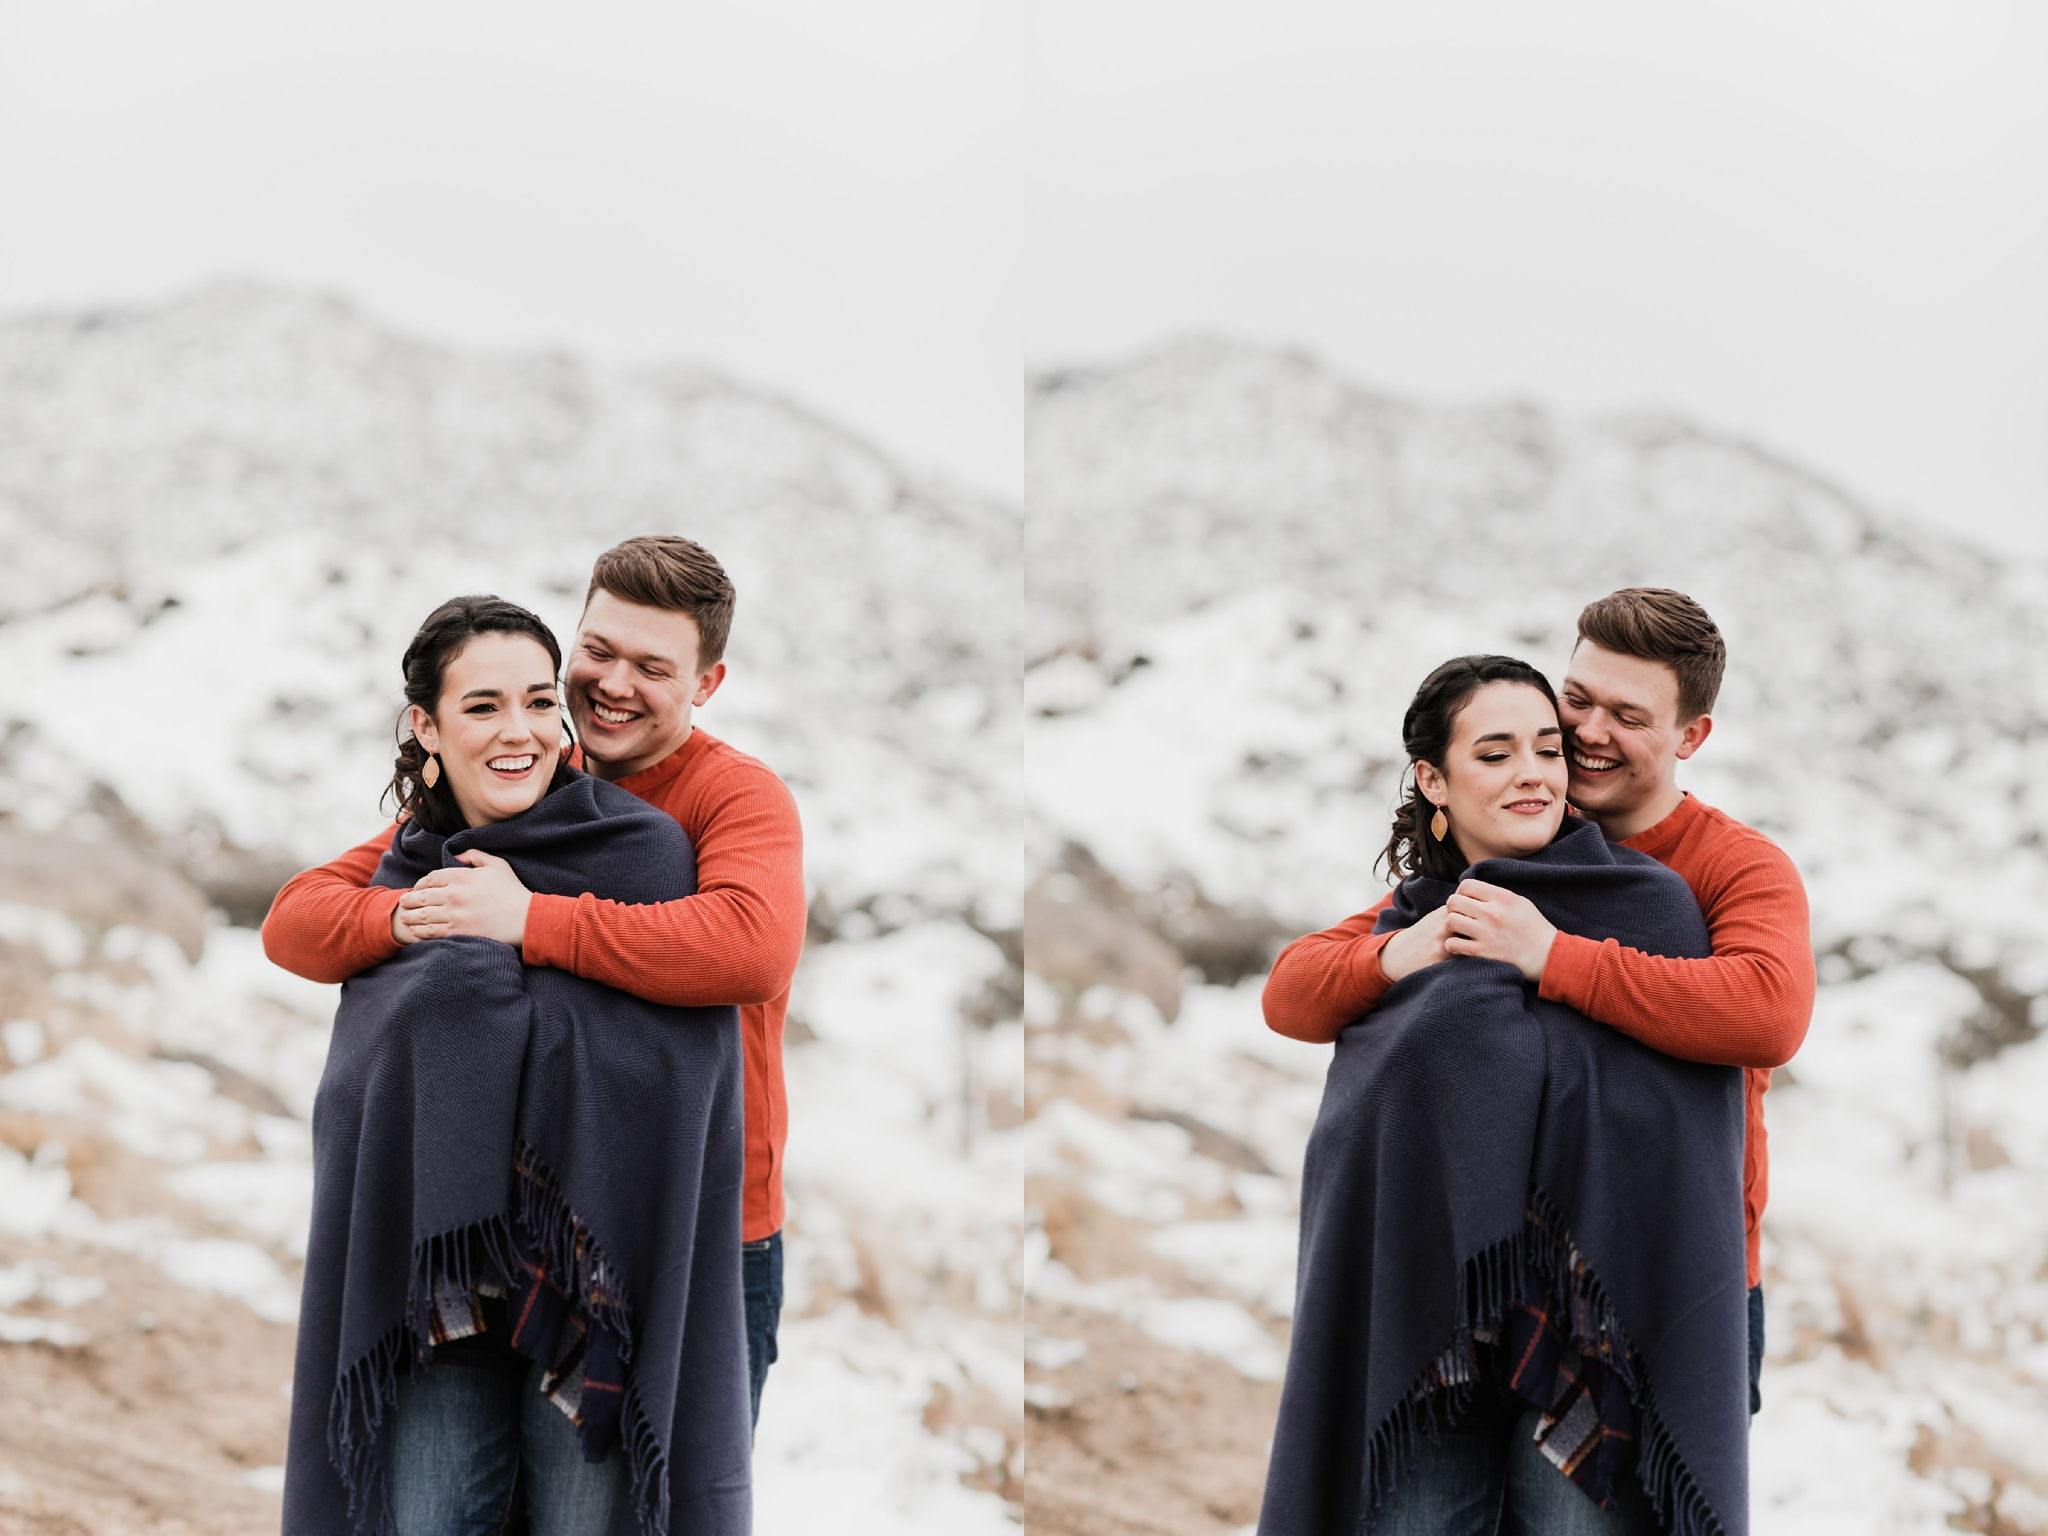 Alicia+lucia+photography+-+albuquerque+wedding+photographer+-+santa+fe+wedding+photography+-+new+mexico+wedding+photographer+-+new+mexico+wedding+-+engagement+-+albuquerque+engagement+-+winter+engagement+-+hyatt+tamaya+wedding_0016.jpg